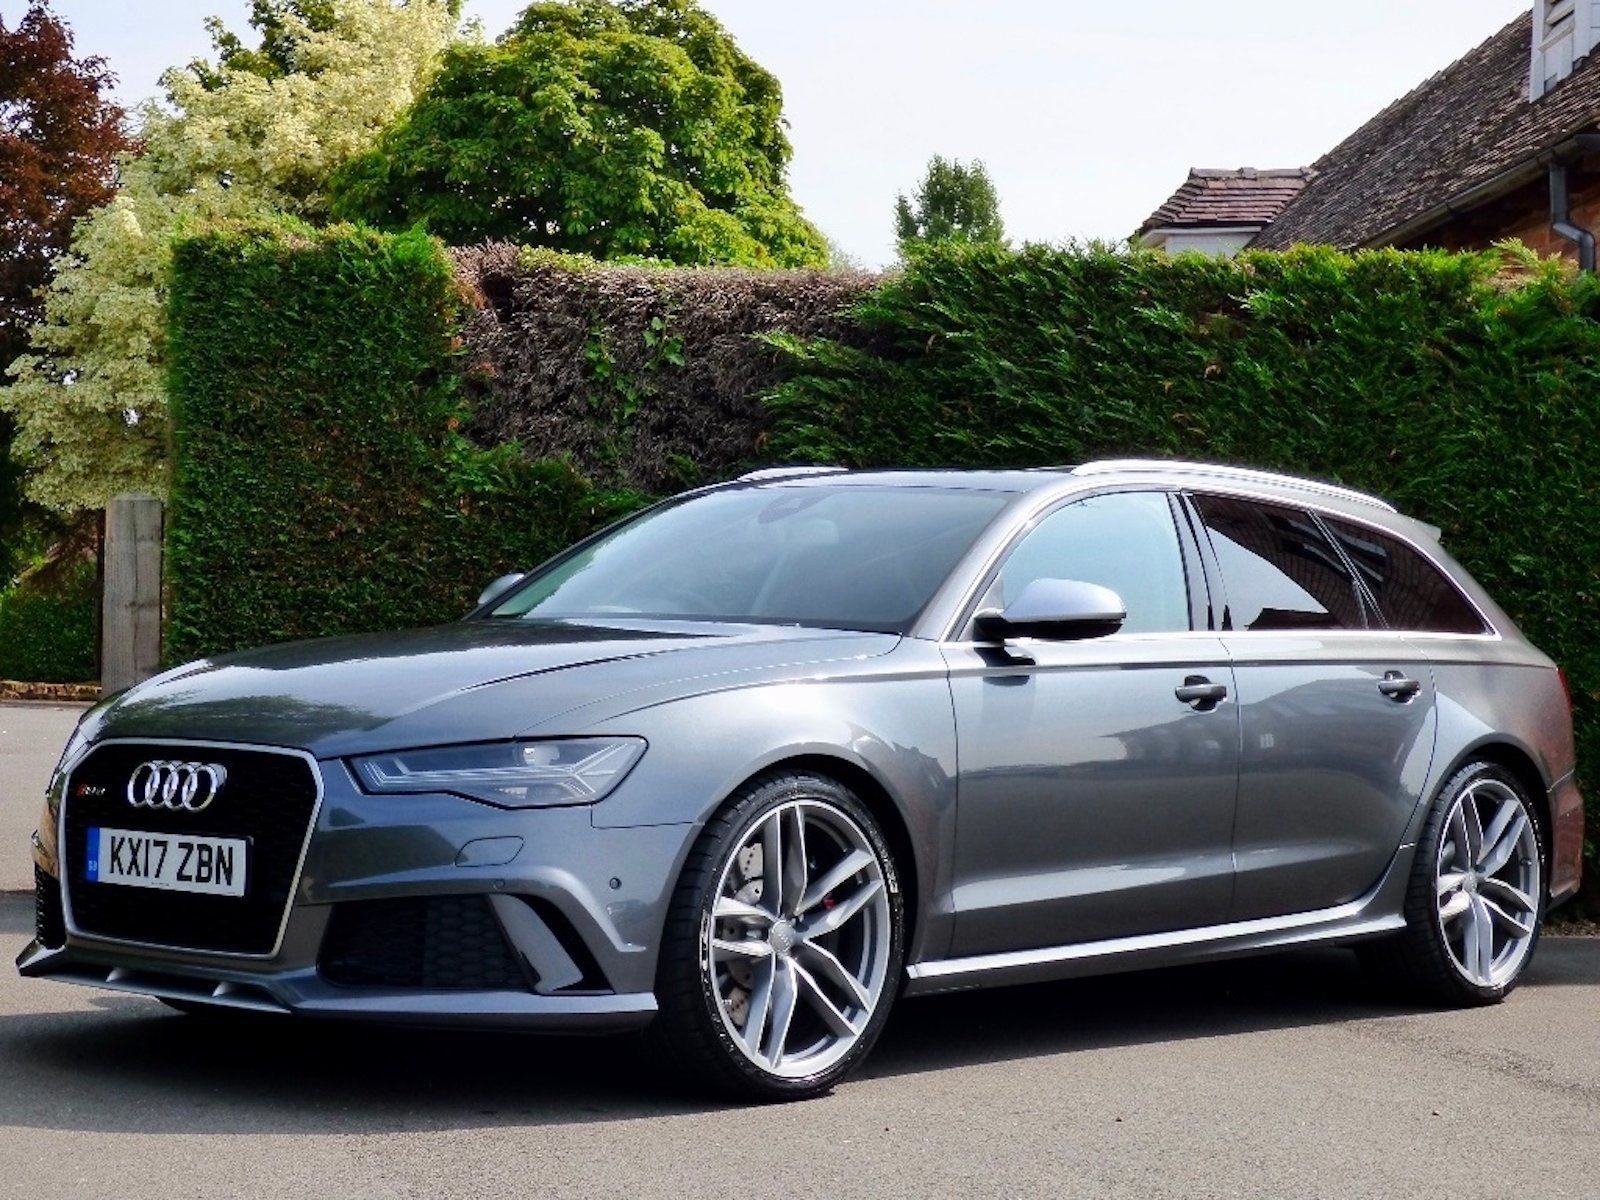 Prince Harry's Audi RS6 Avant is For Sale in the UK ...